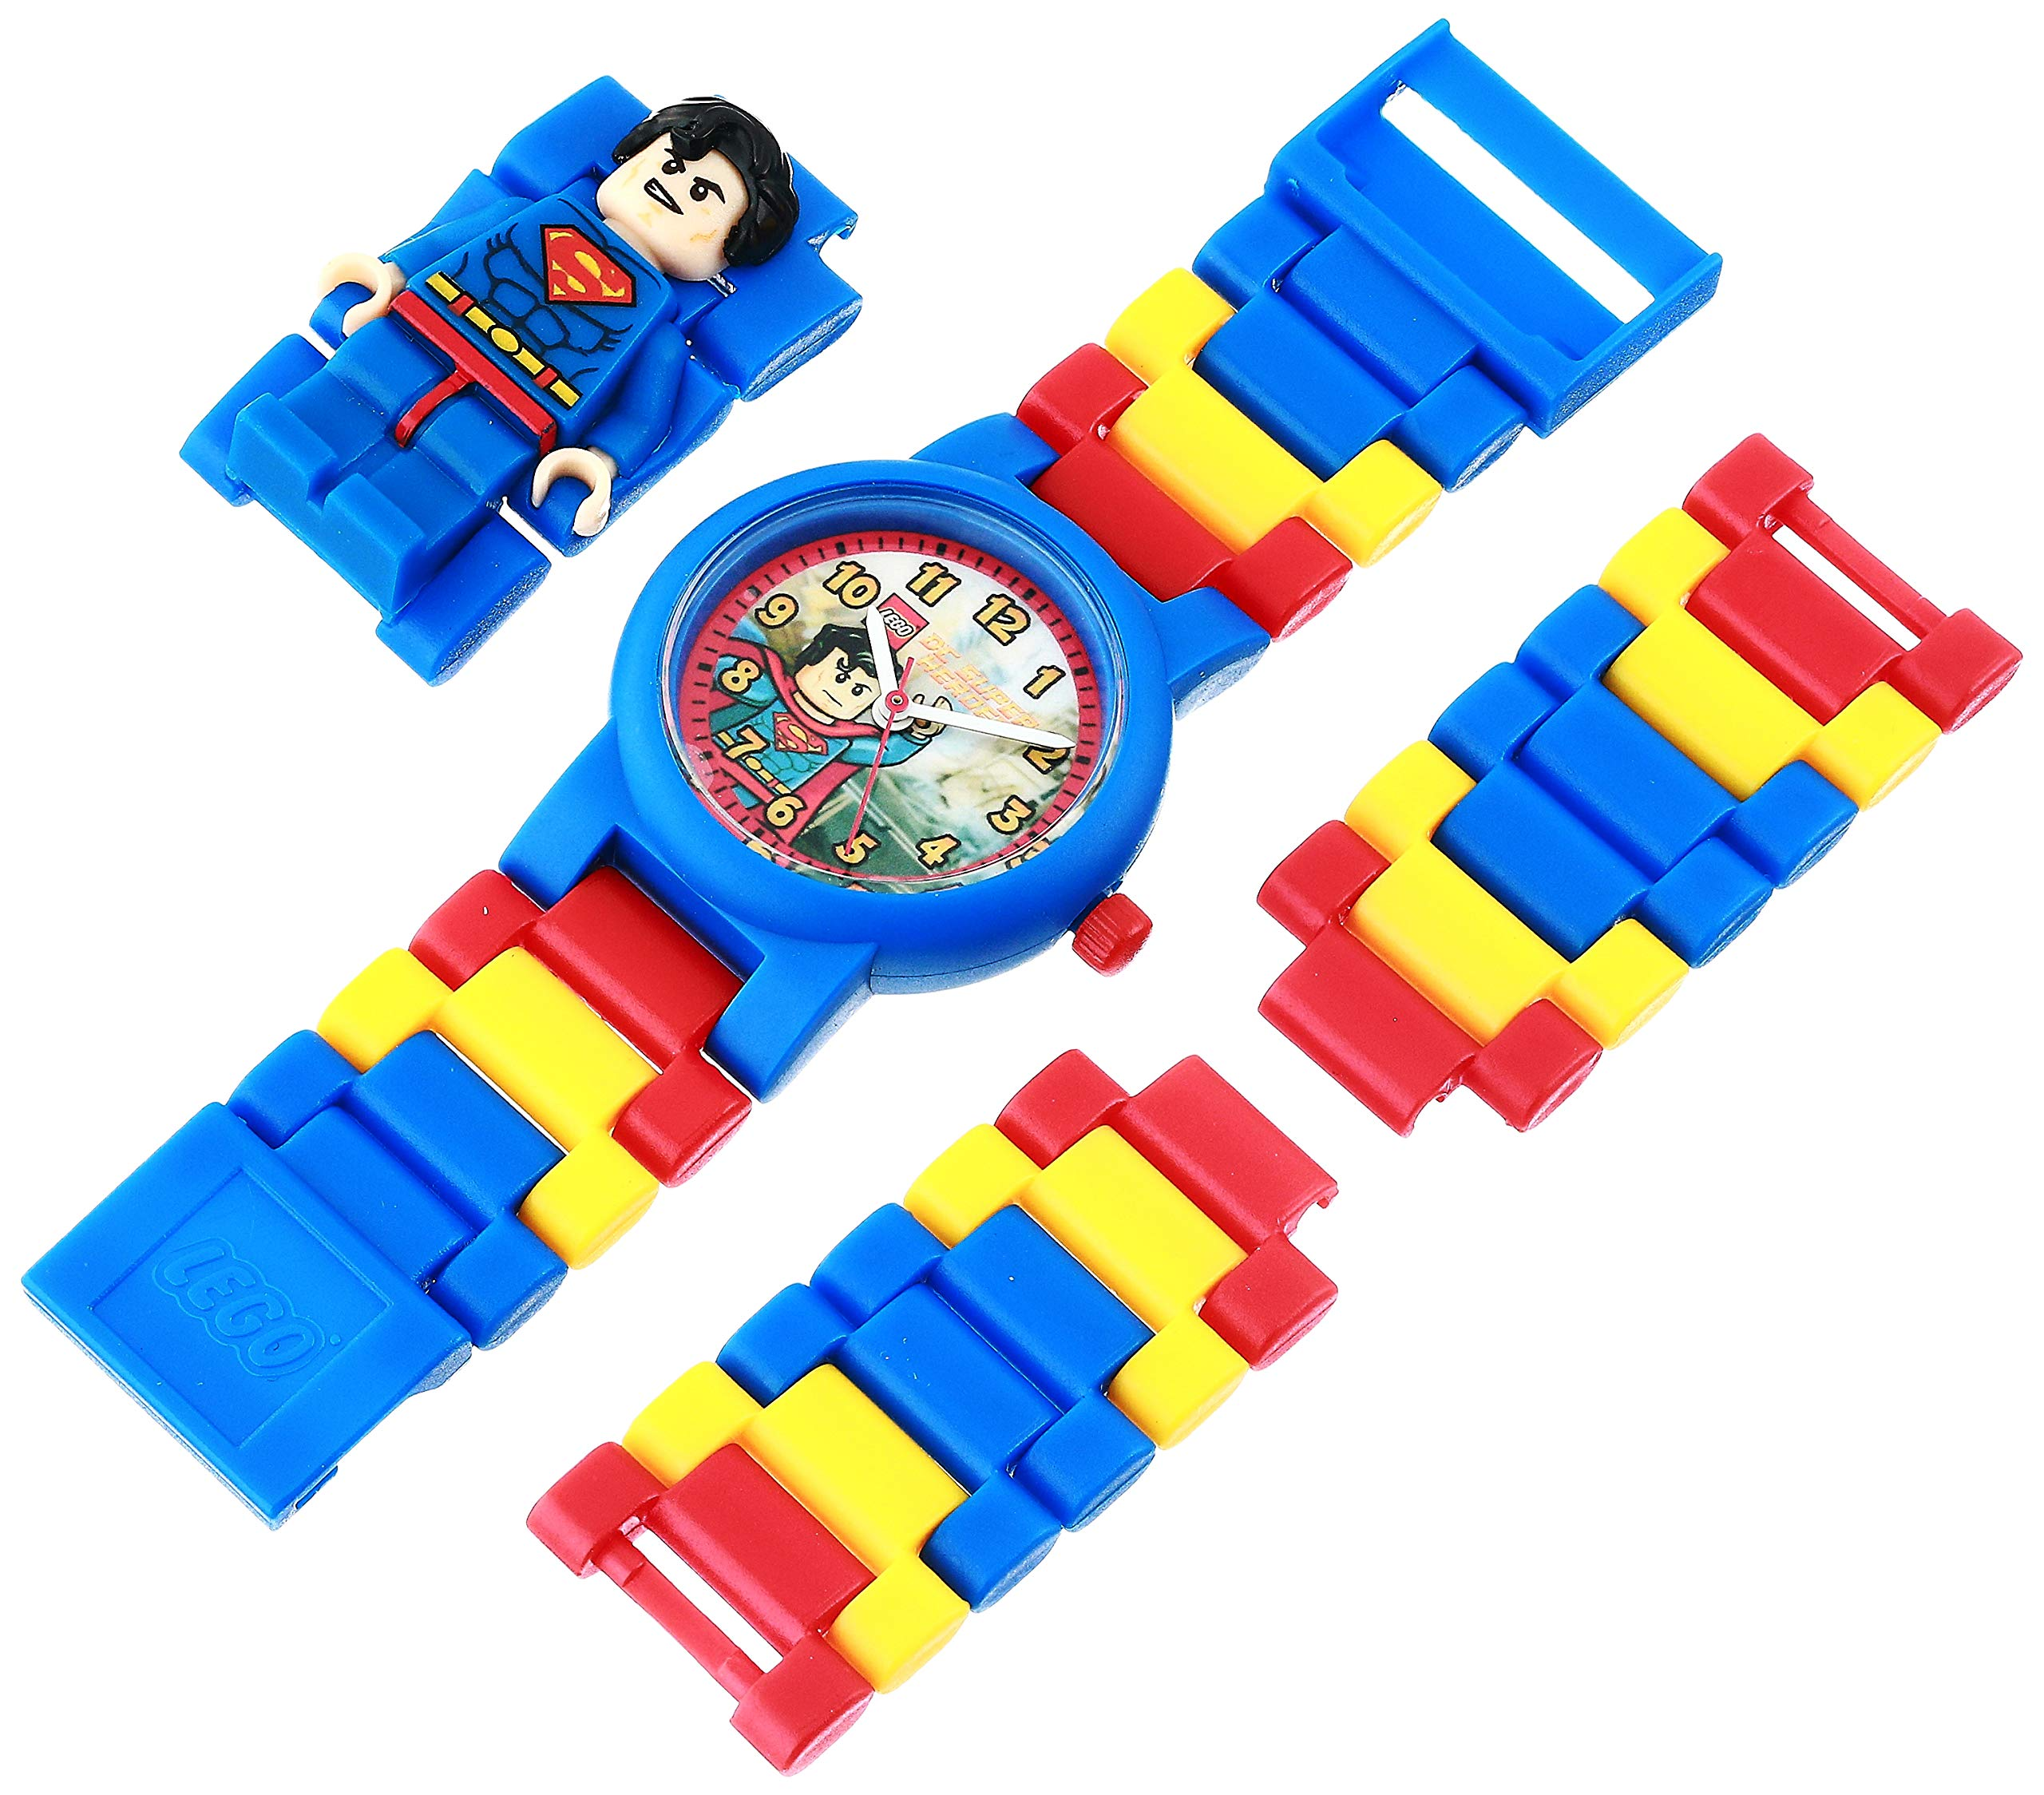 LEGO DC Comics 8020257 Super Heroes Superman Kids Minifigure Link Buildable Watch | blue/red | plastic | 25mm case diameter| analog quartz | boy girl | official by ClicTime